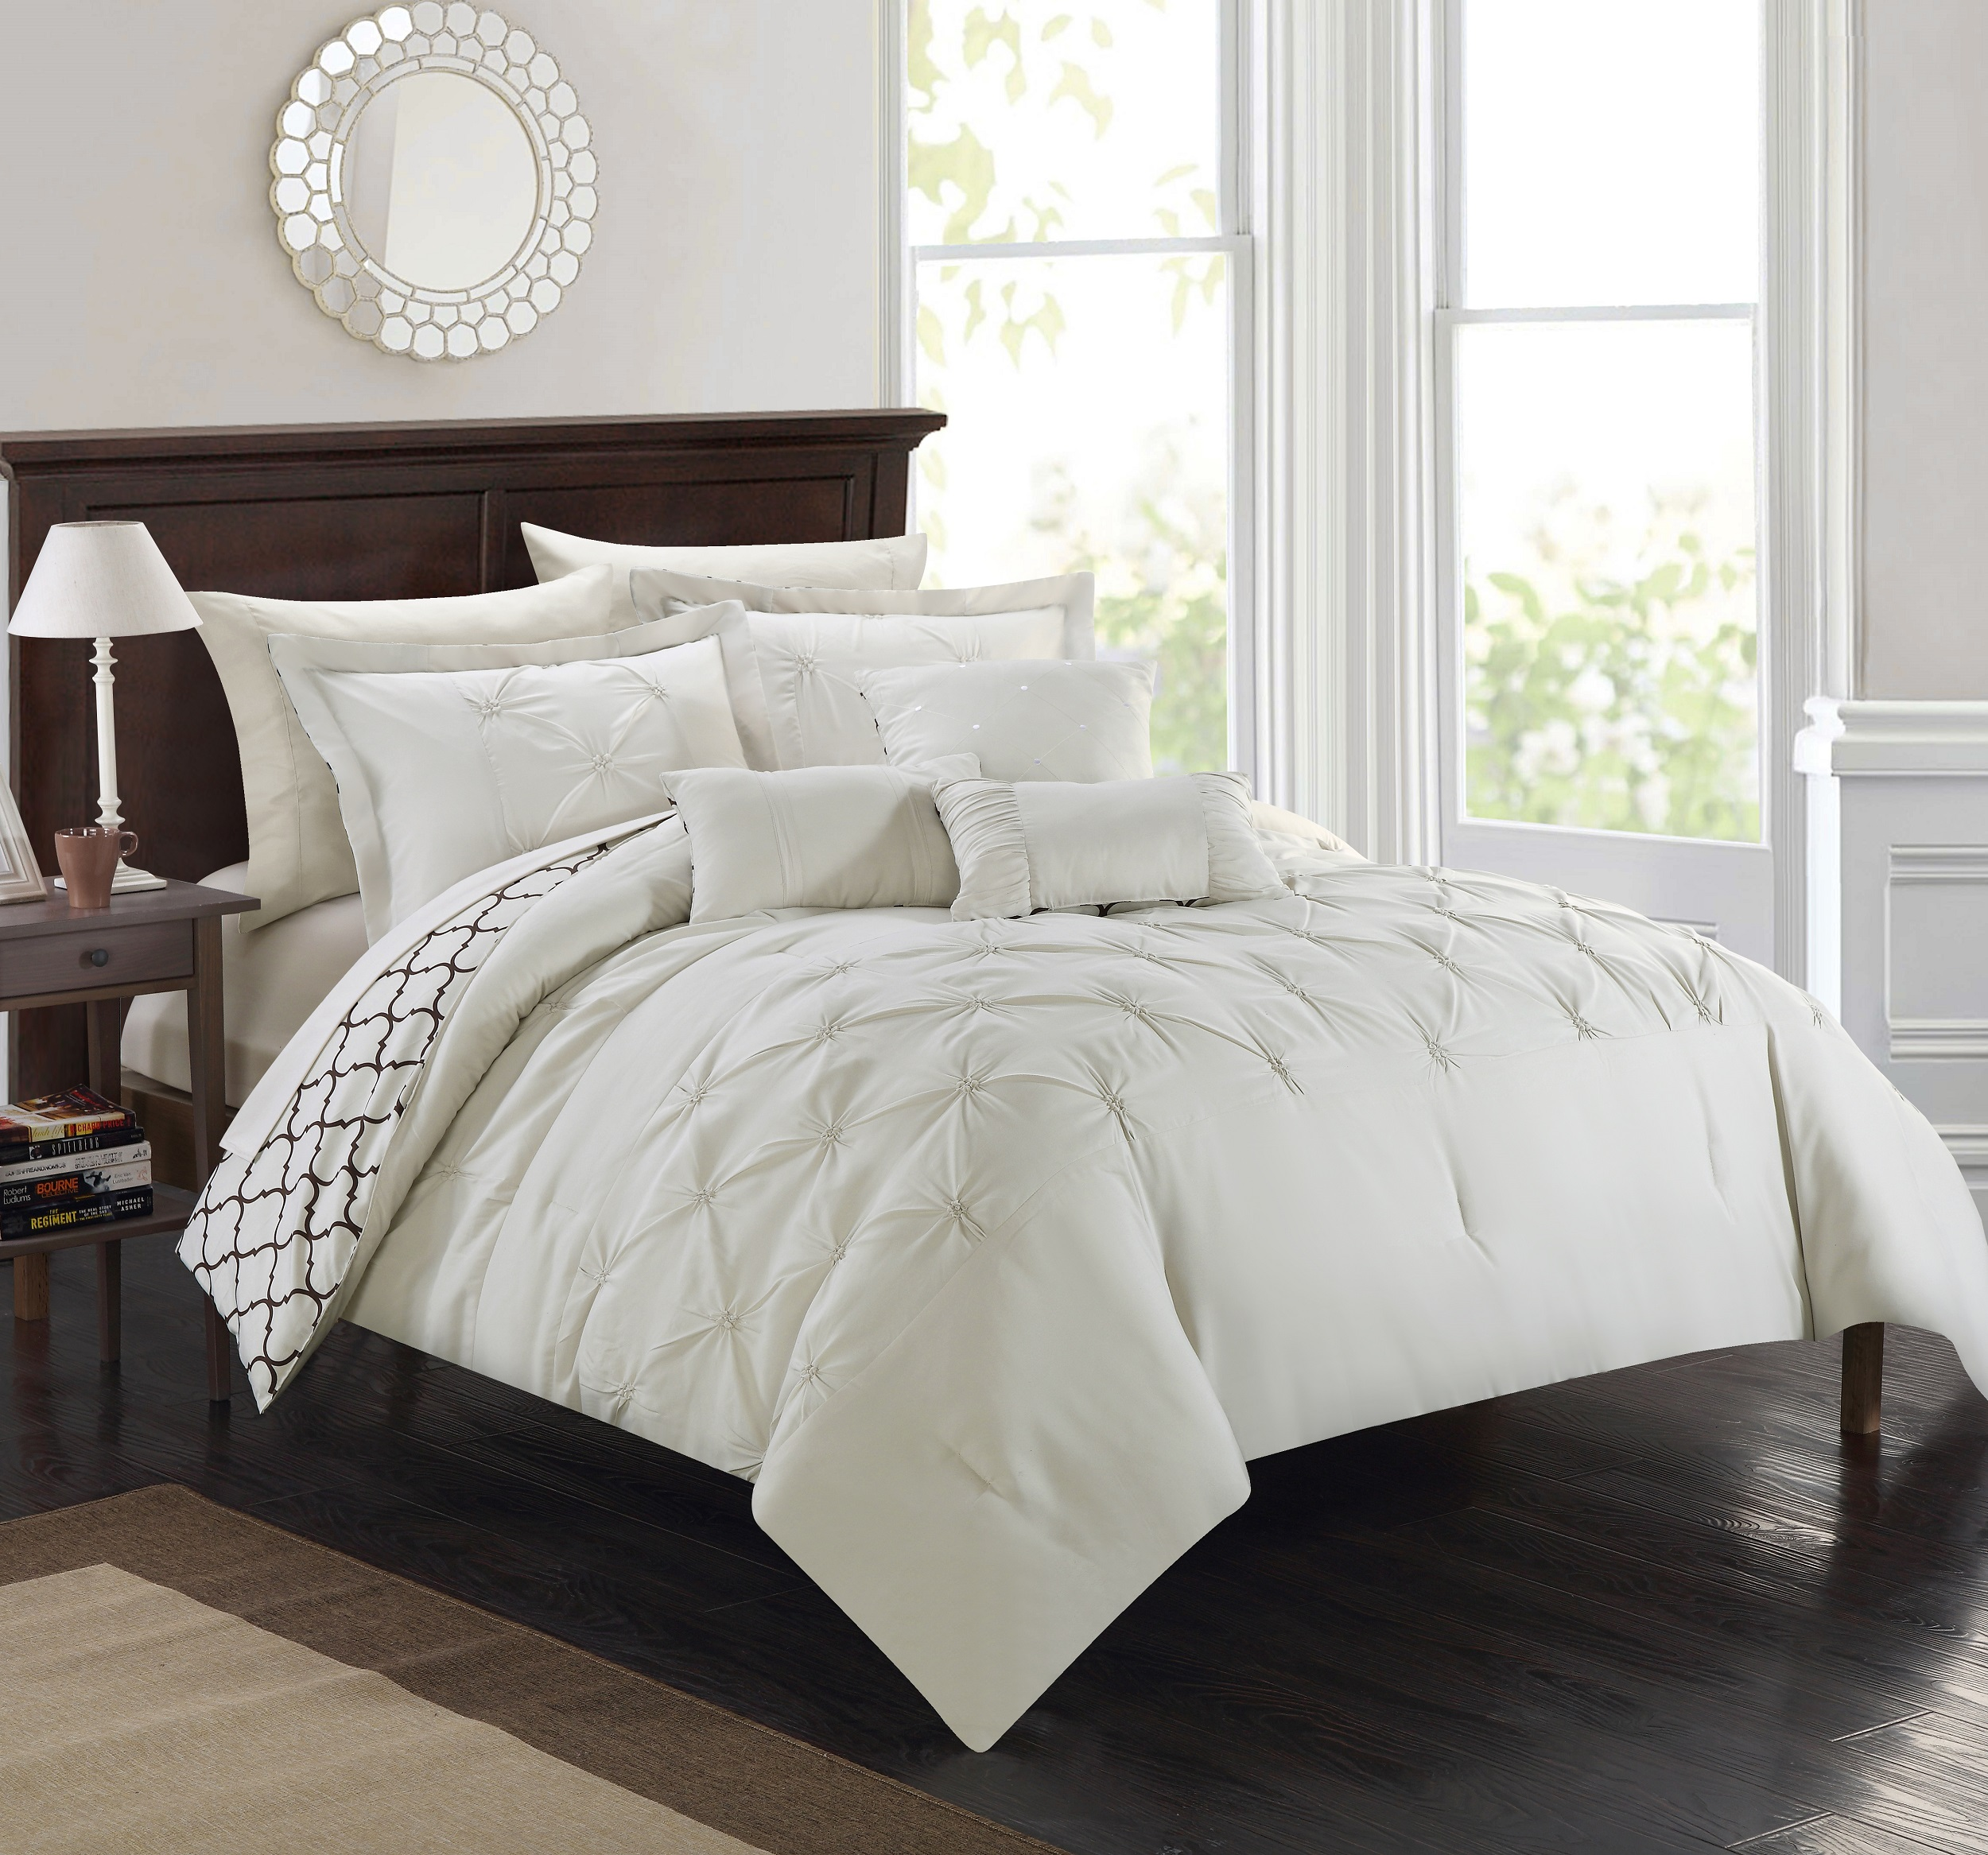 Chic Home 10-Piece Edney Pinch Pleated Reversible Bed In a Bag Comforter Set